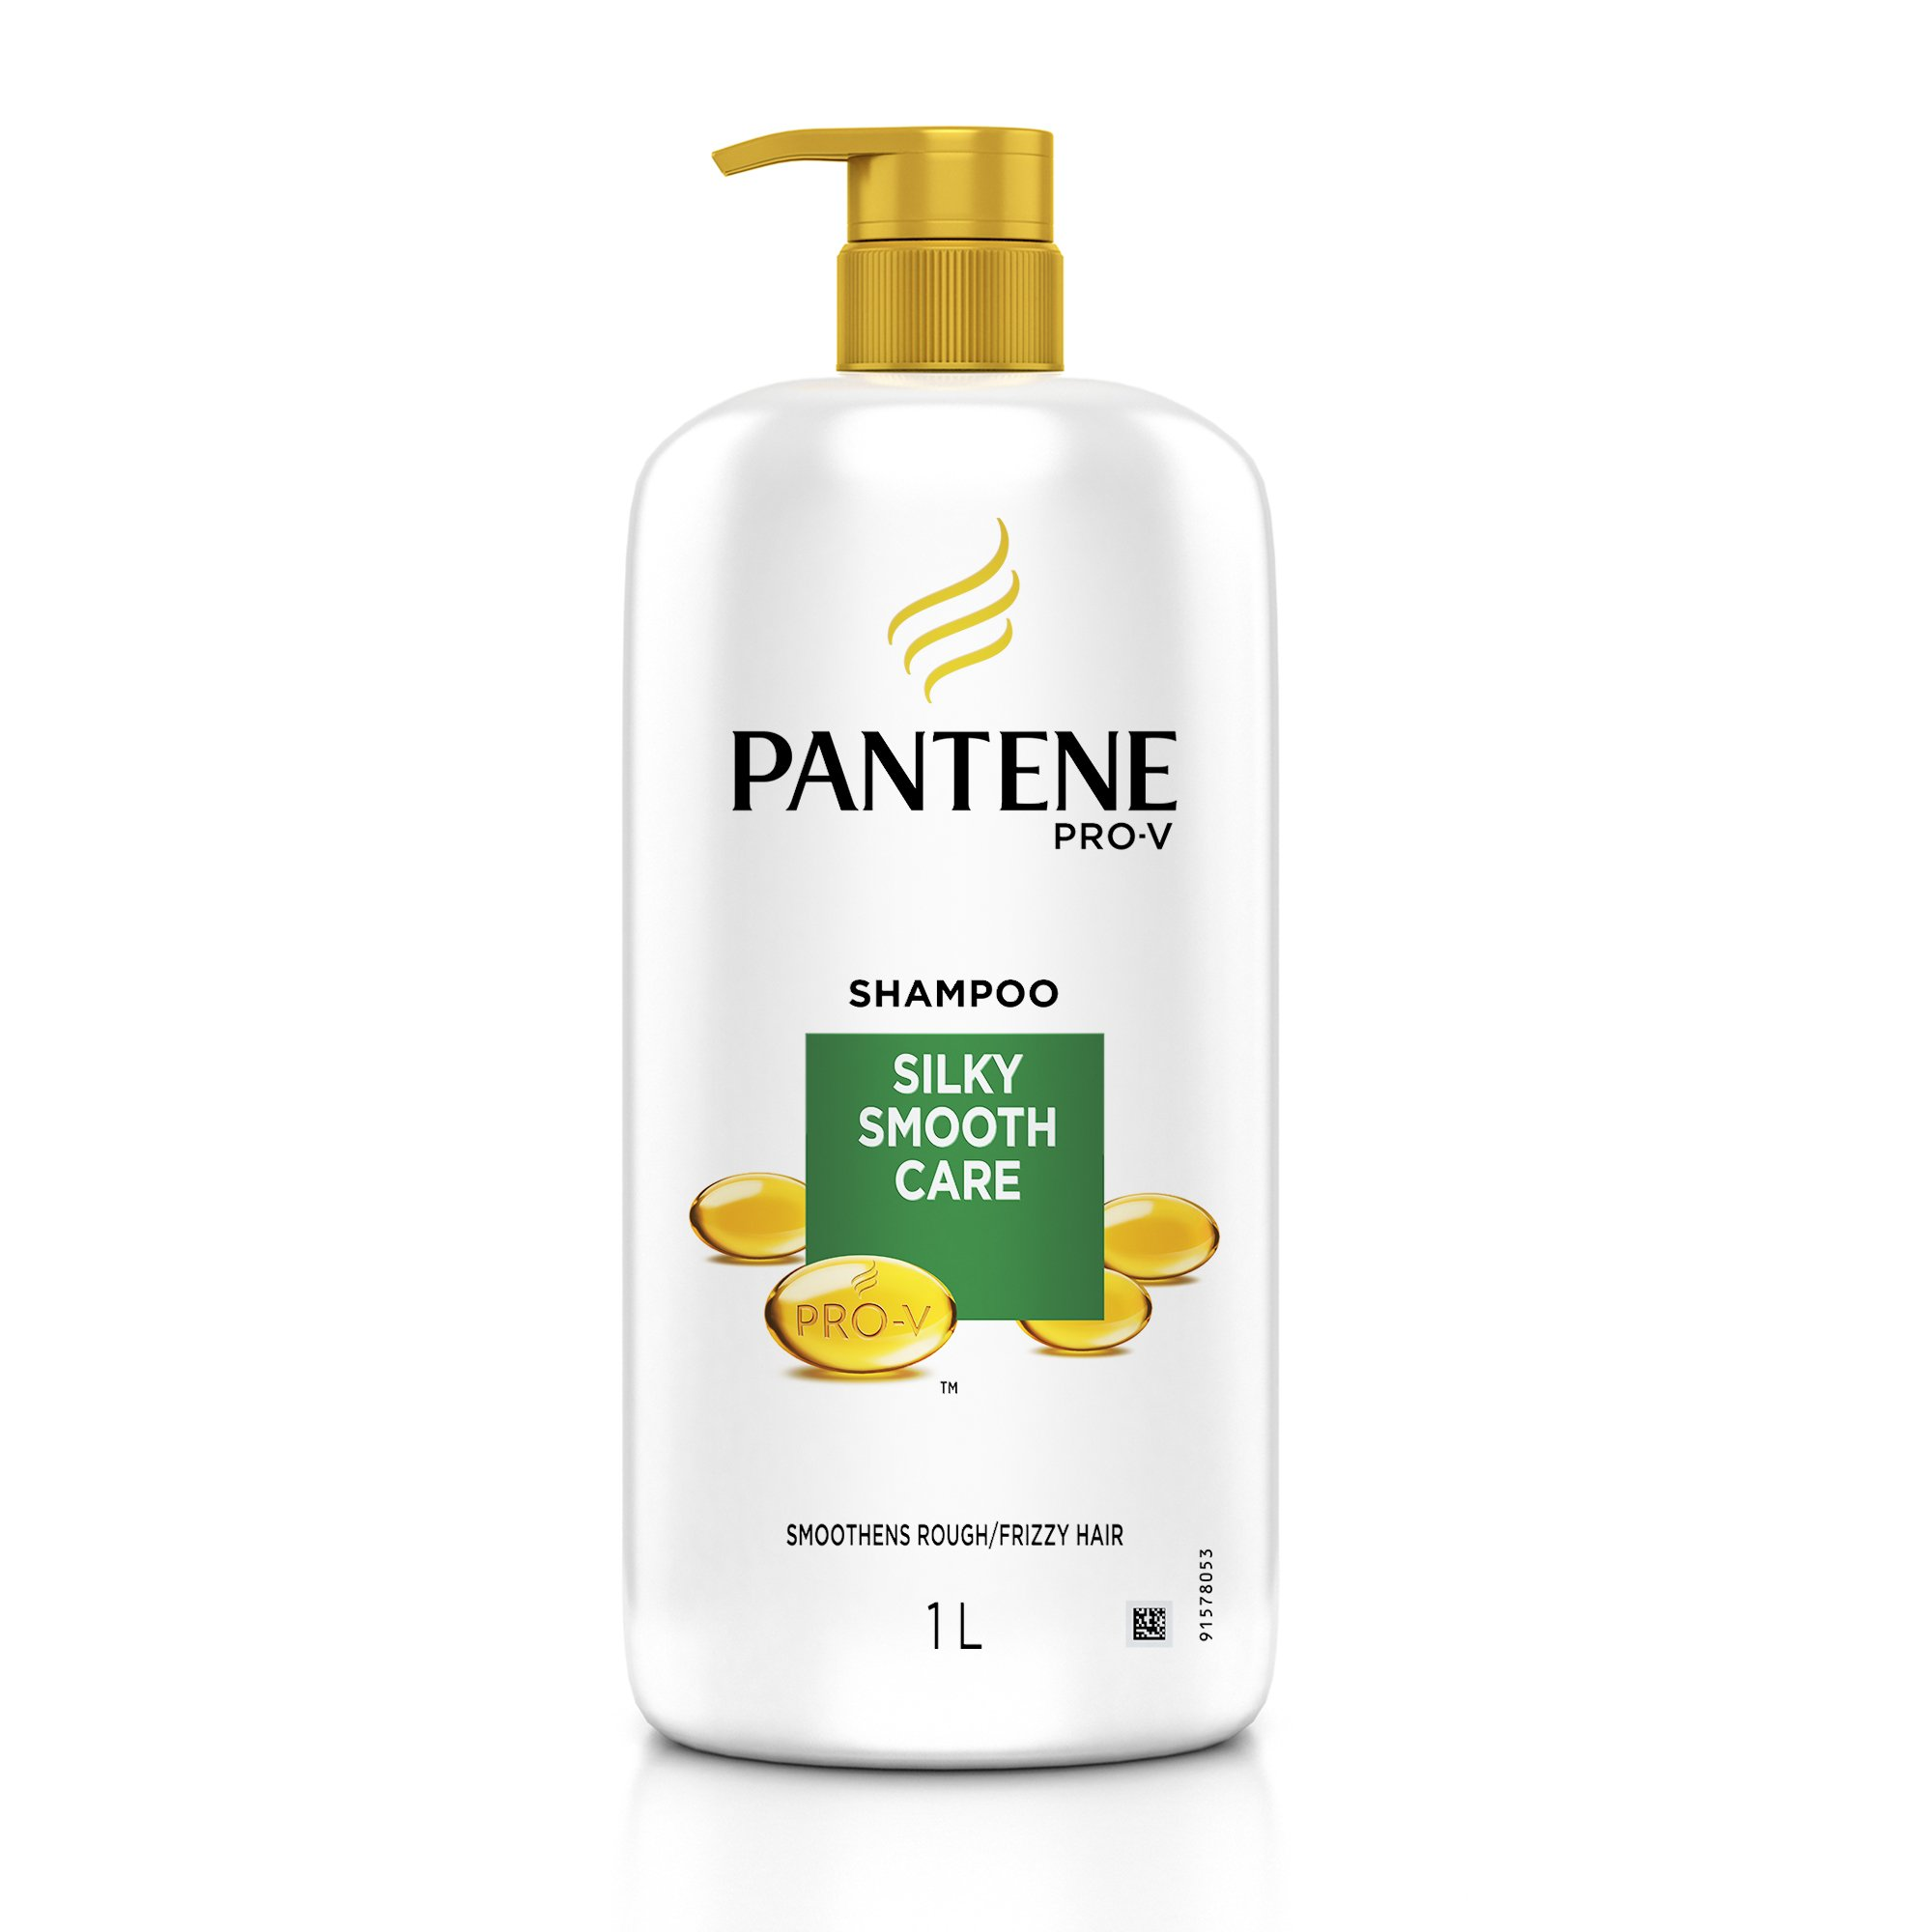 Pantene Silky Smooth Care Shampoo, 1L product image